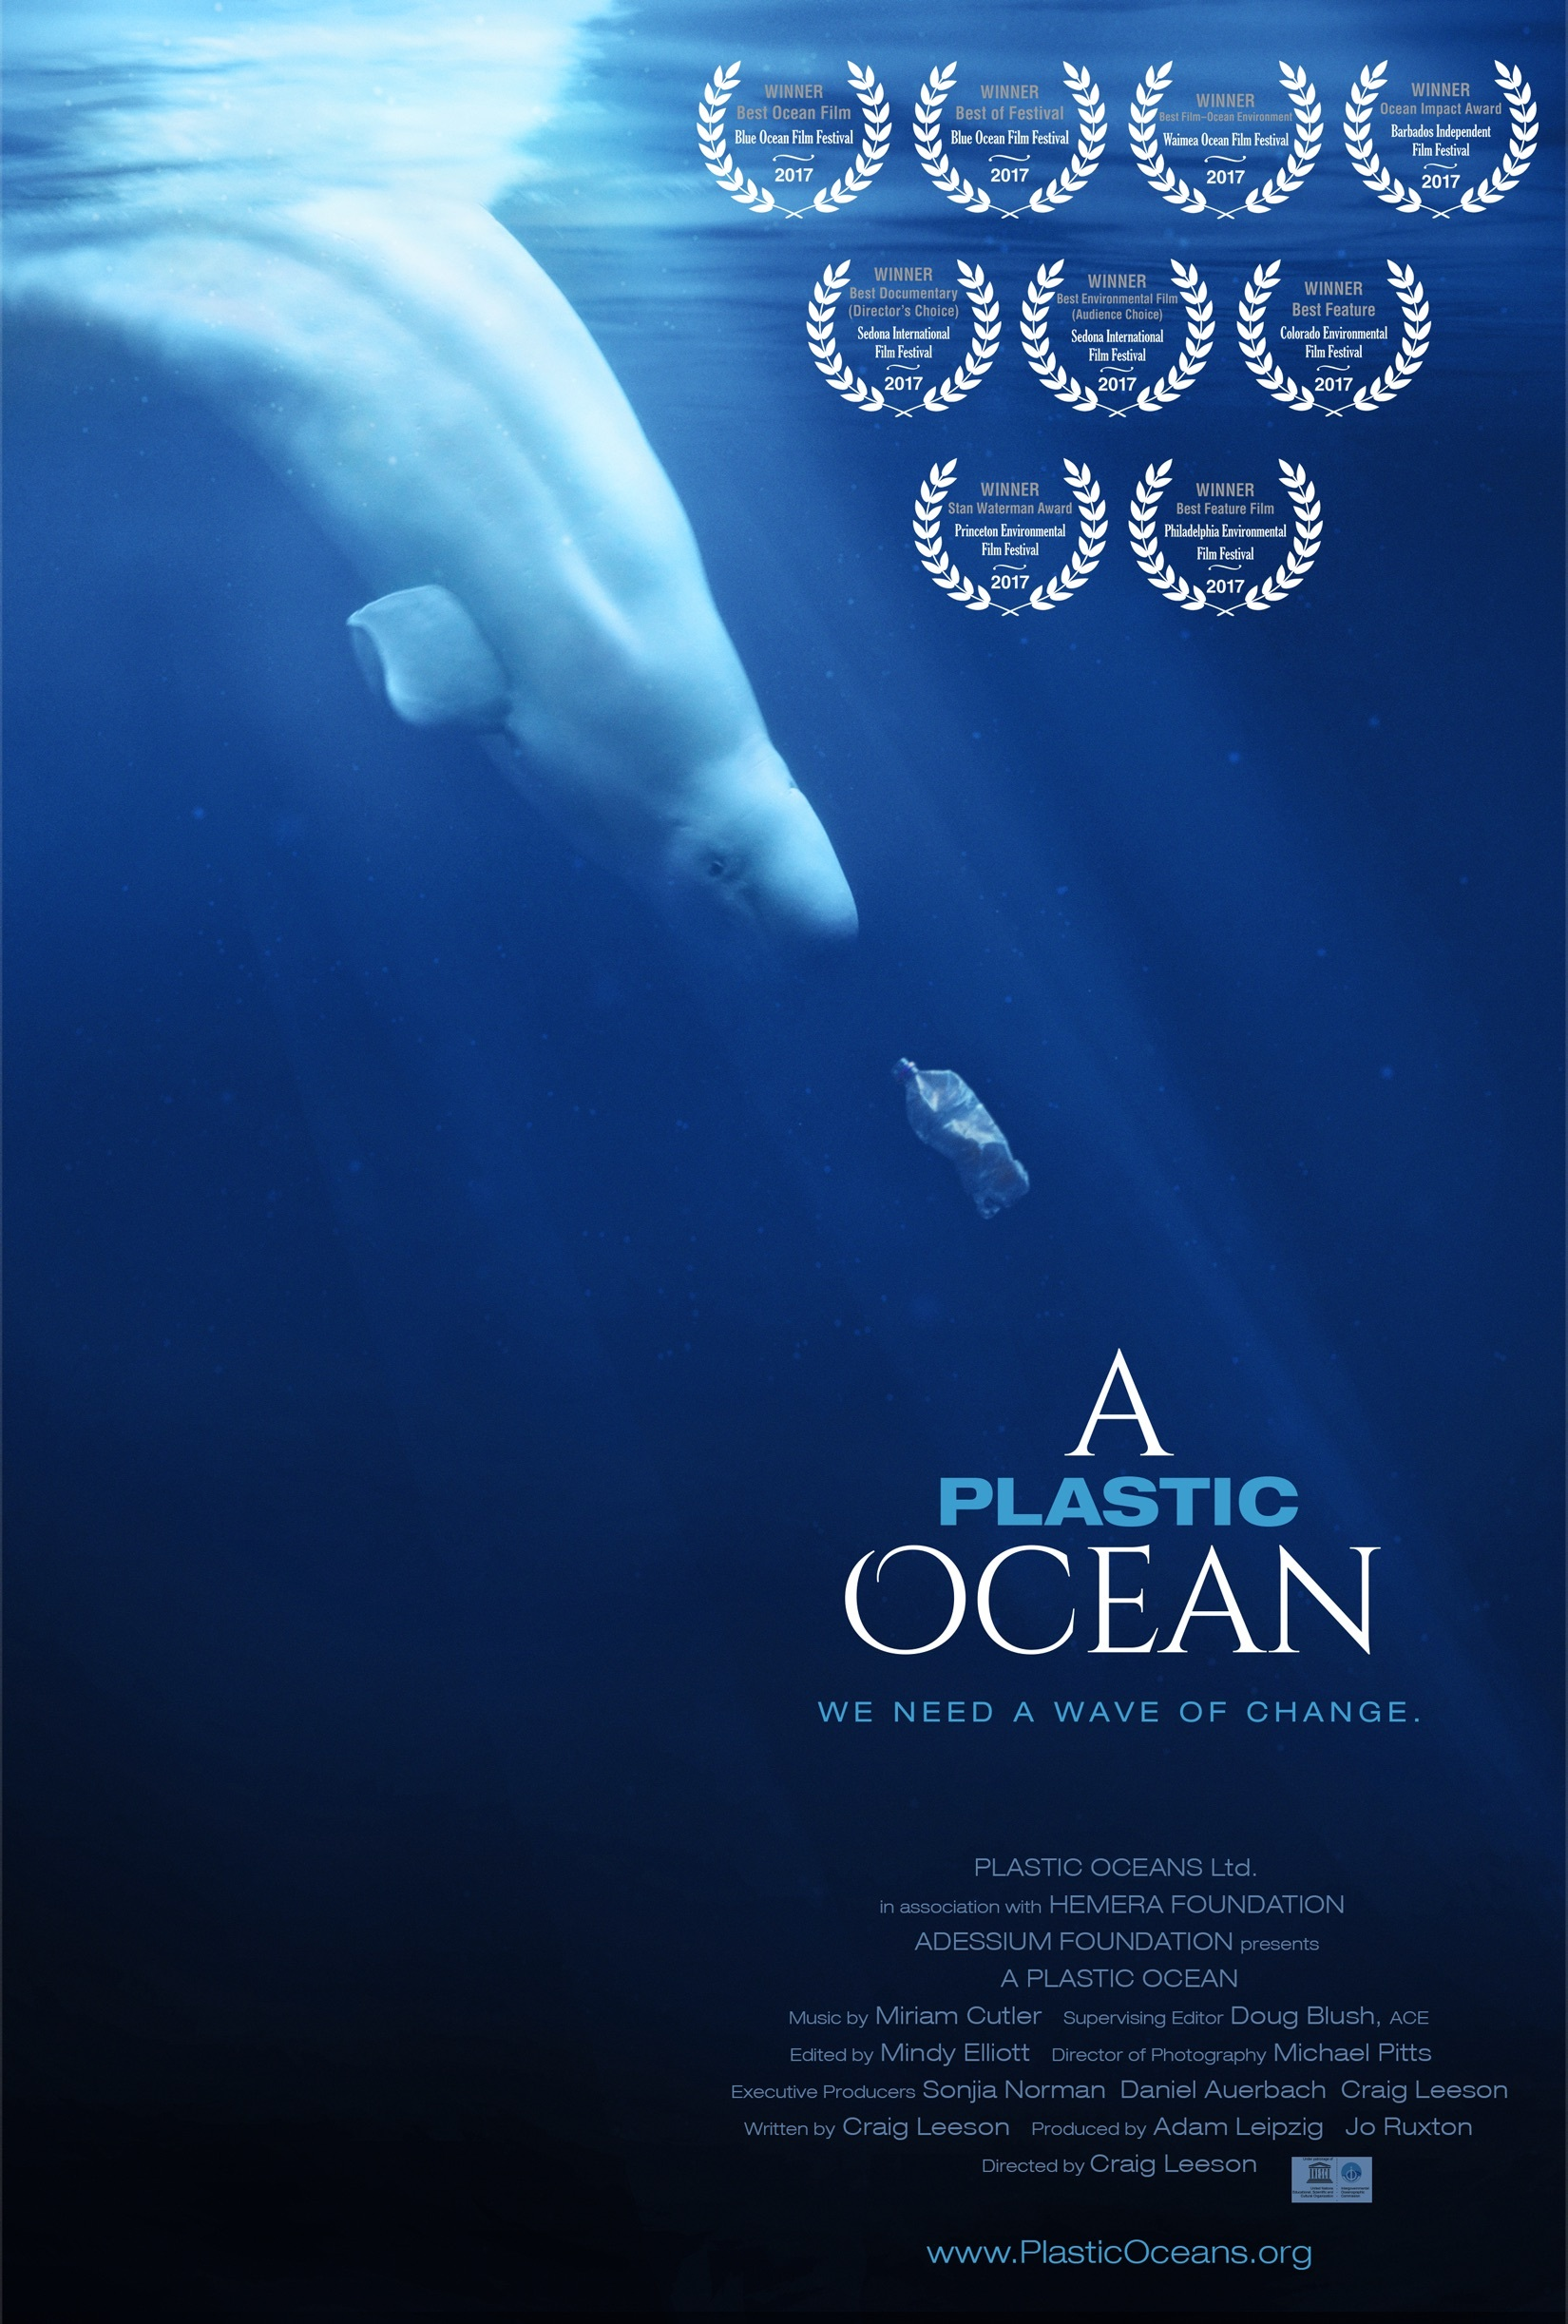 Official poster for A Plastic Ocean documentary film